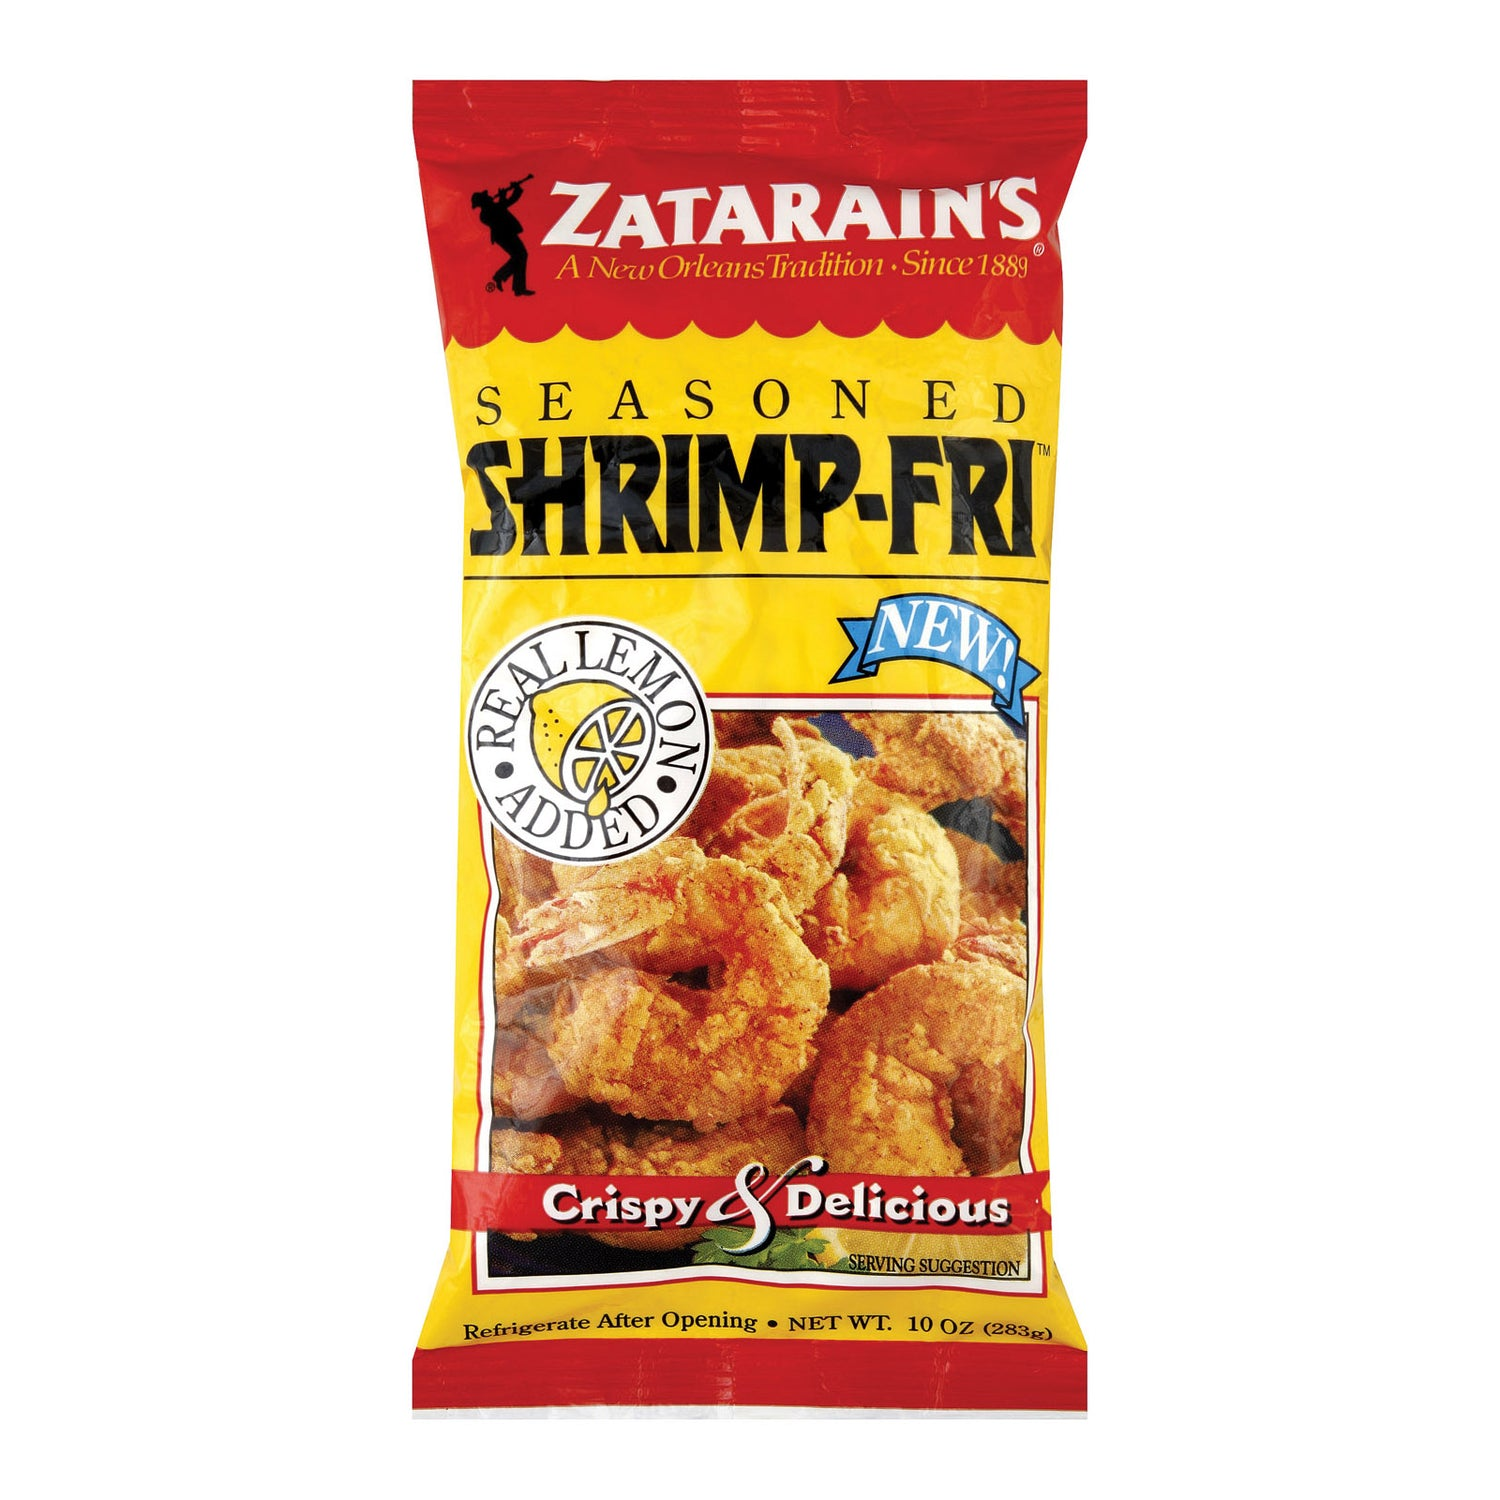 Zatarain's Shrimp Fry - Seasoned - Case Of 12 - 10 Oz.